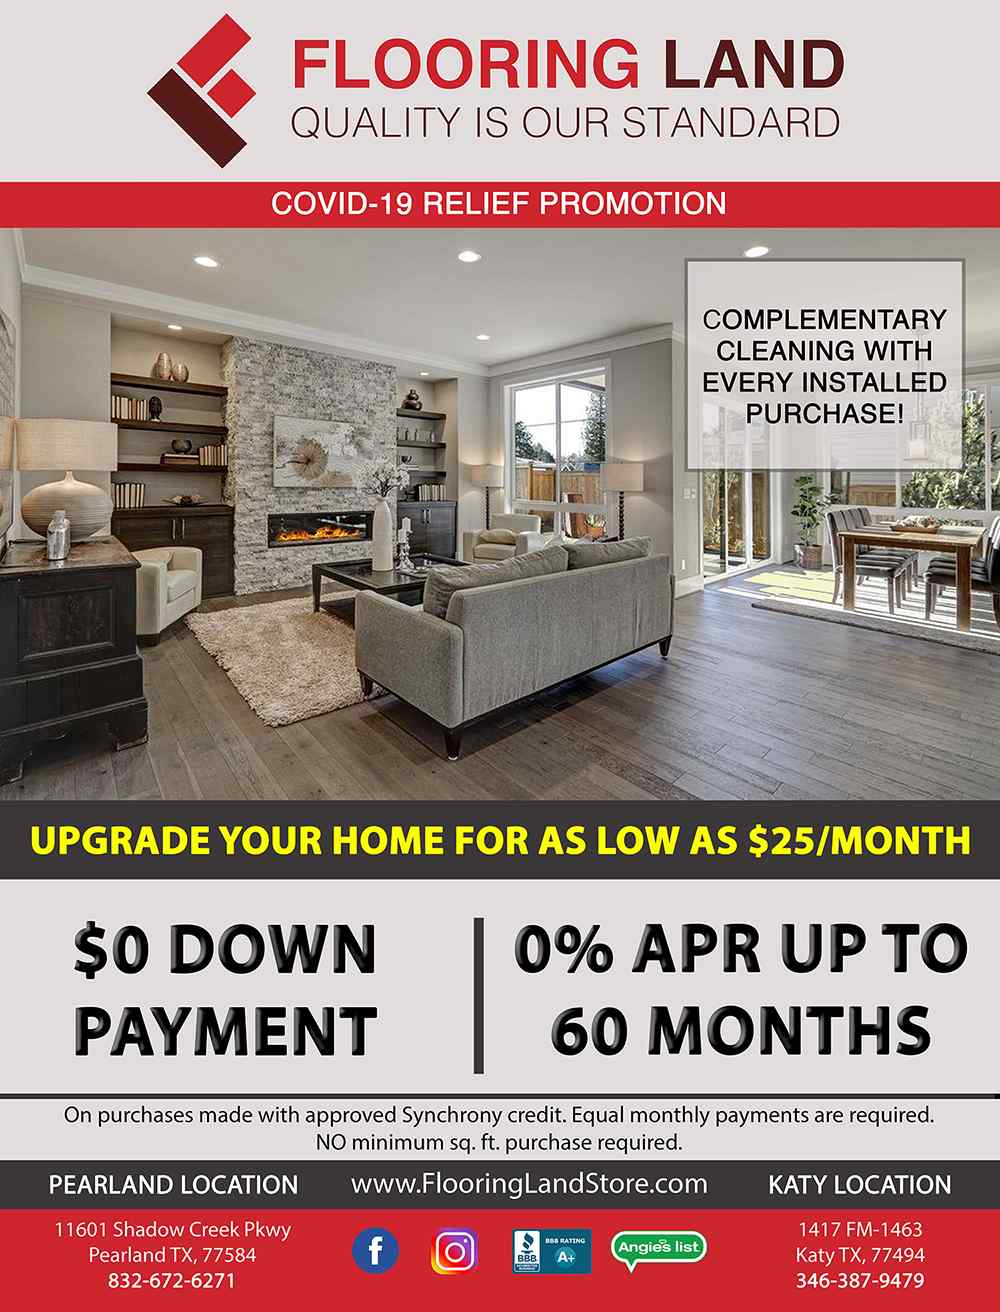 PROMOTIONS -$0 Down Payment - 0% APR Financing up To 60 Months